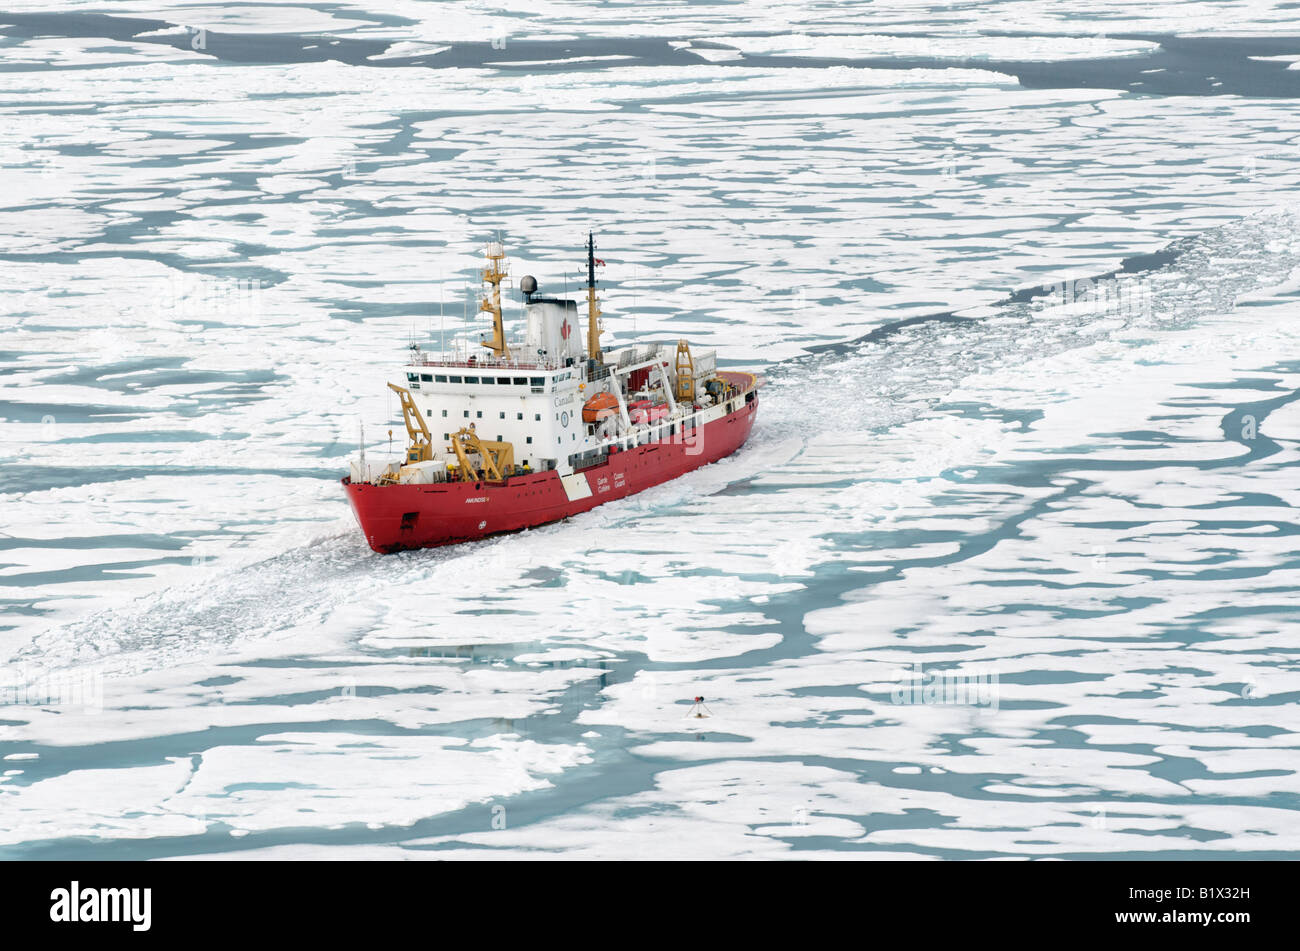 Image result for arctic icebreaker ship